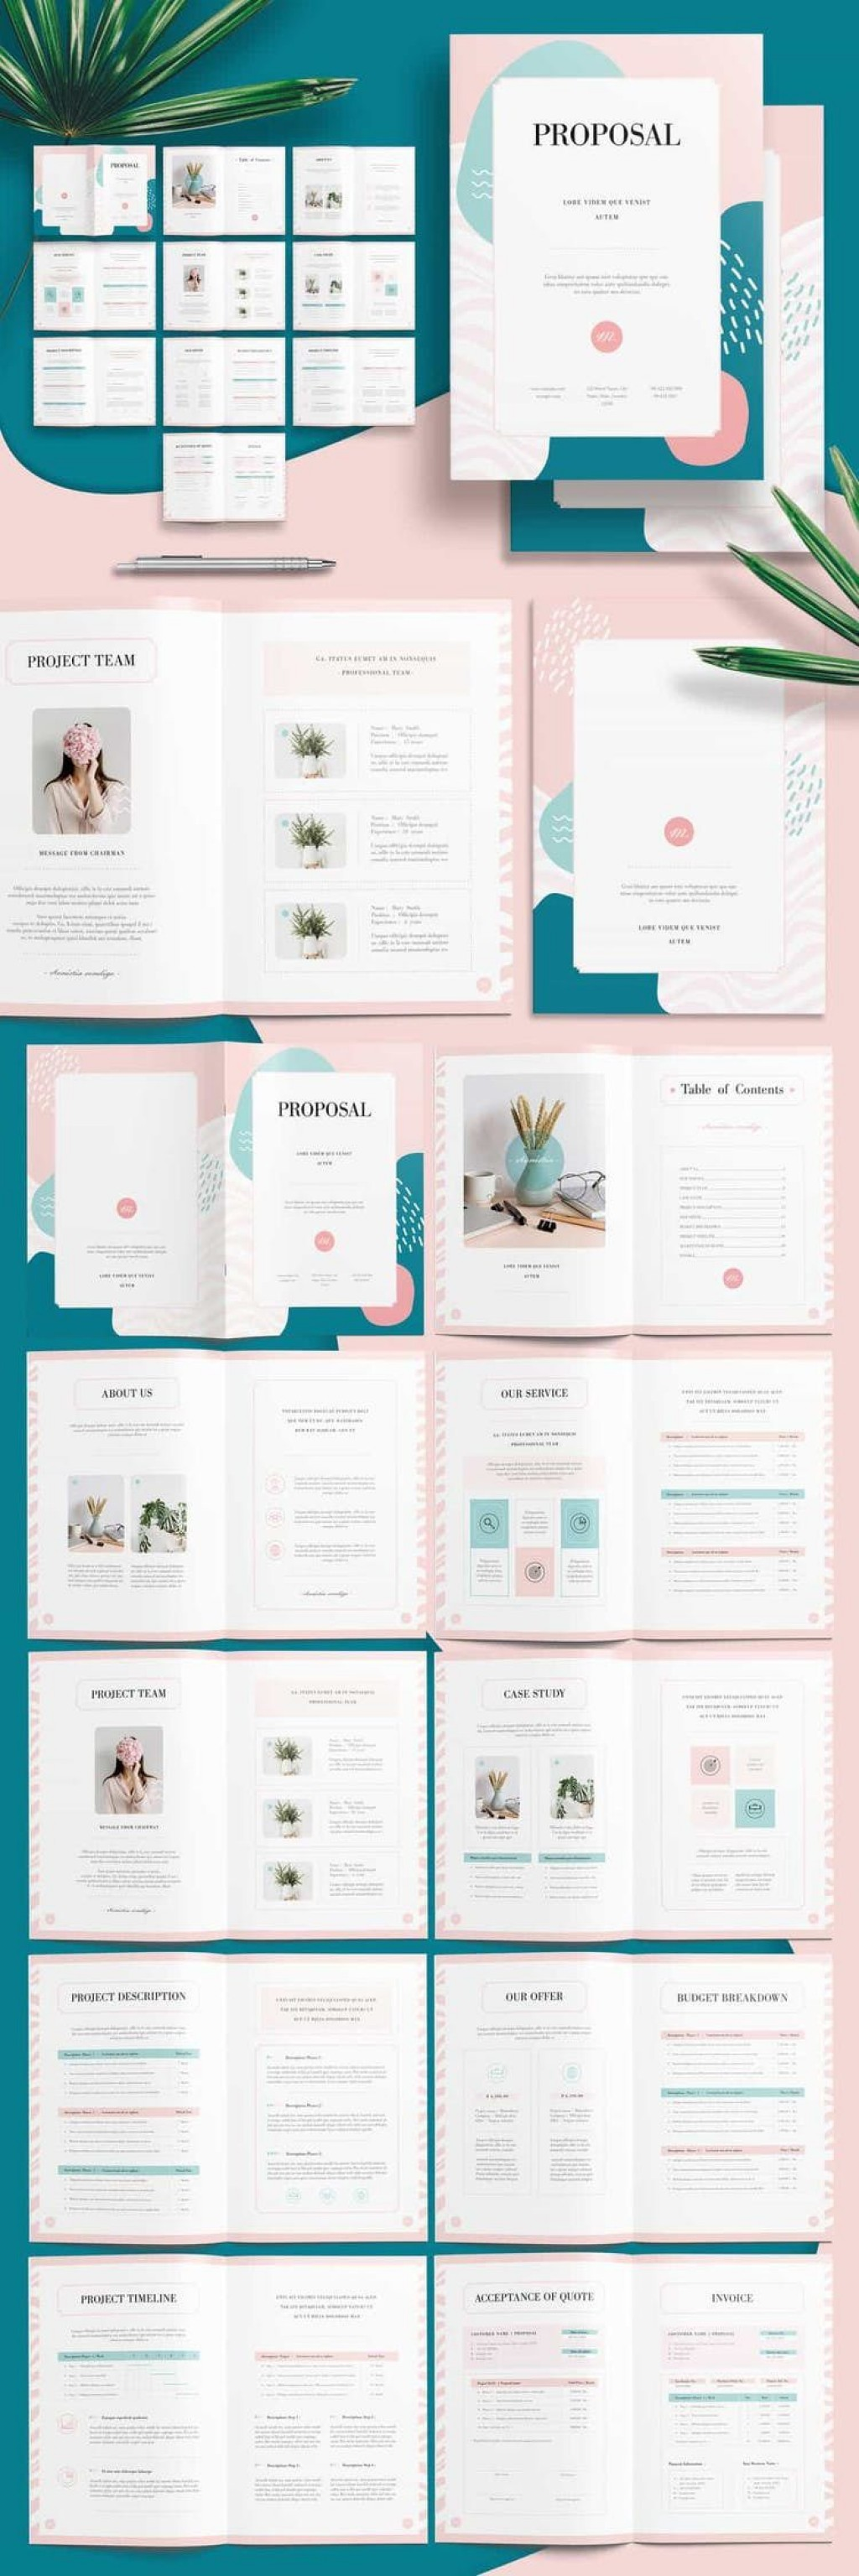 006 Wonderful Annual Report Design Template Example  Templates Word Timeles Free Download InLarge